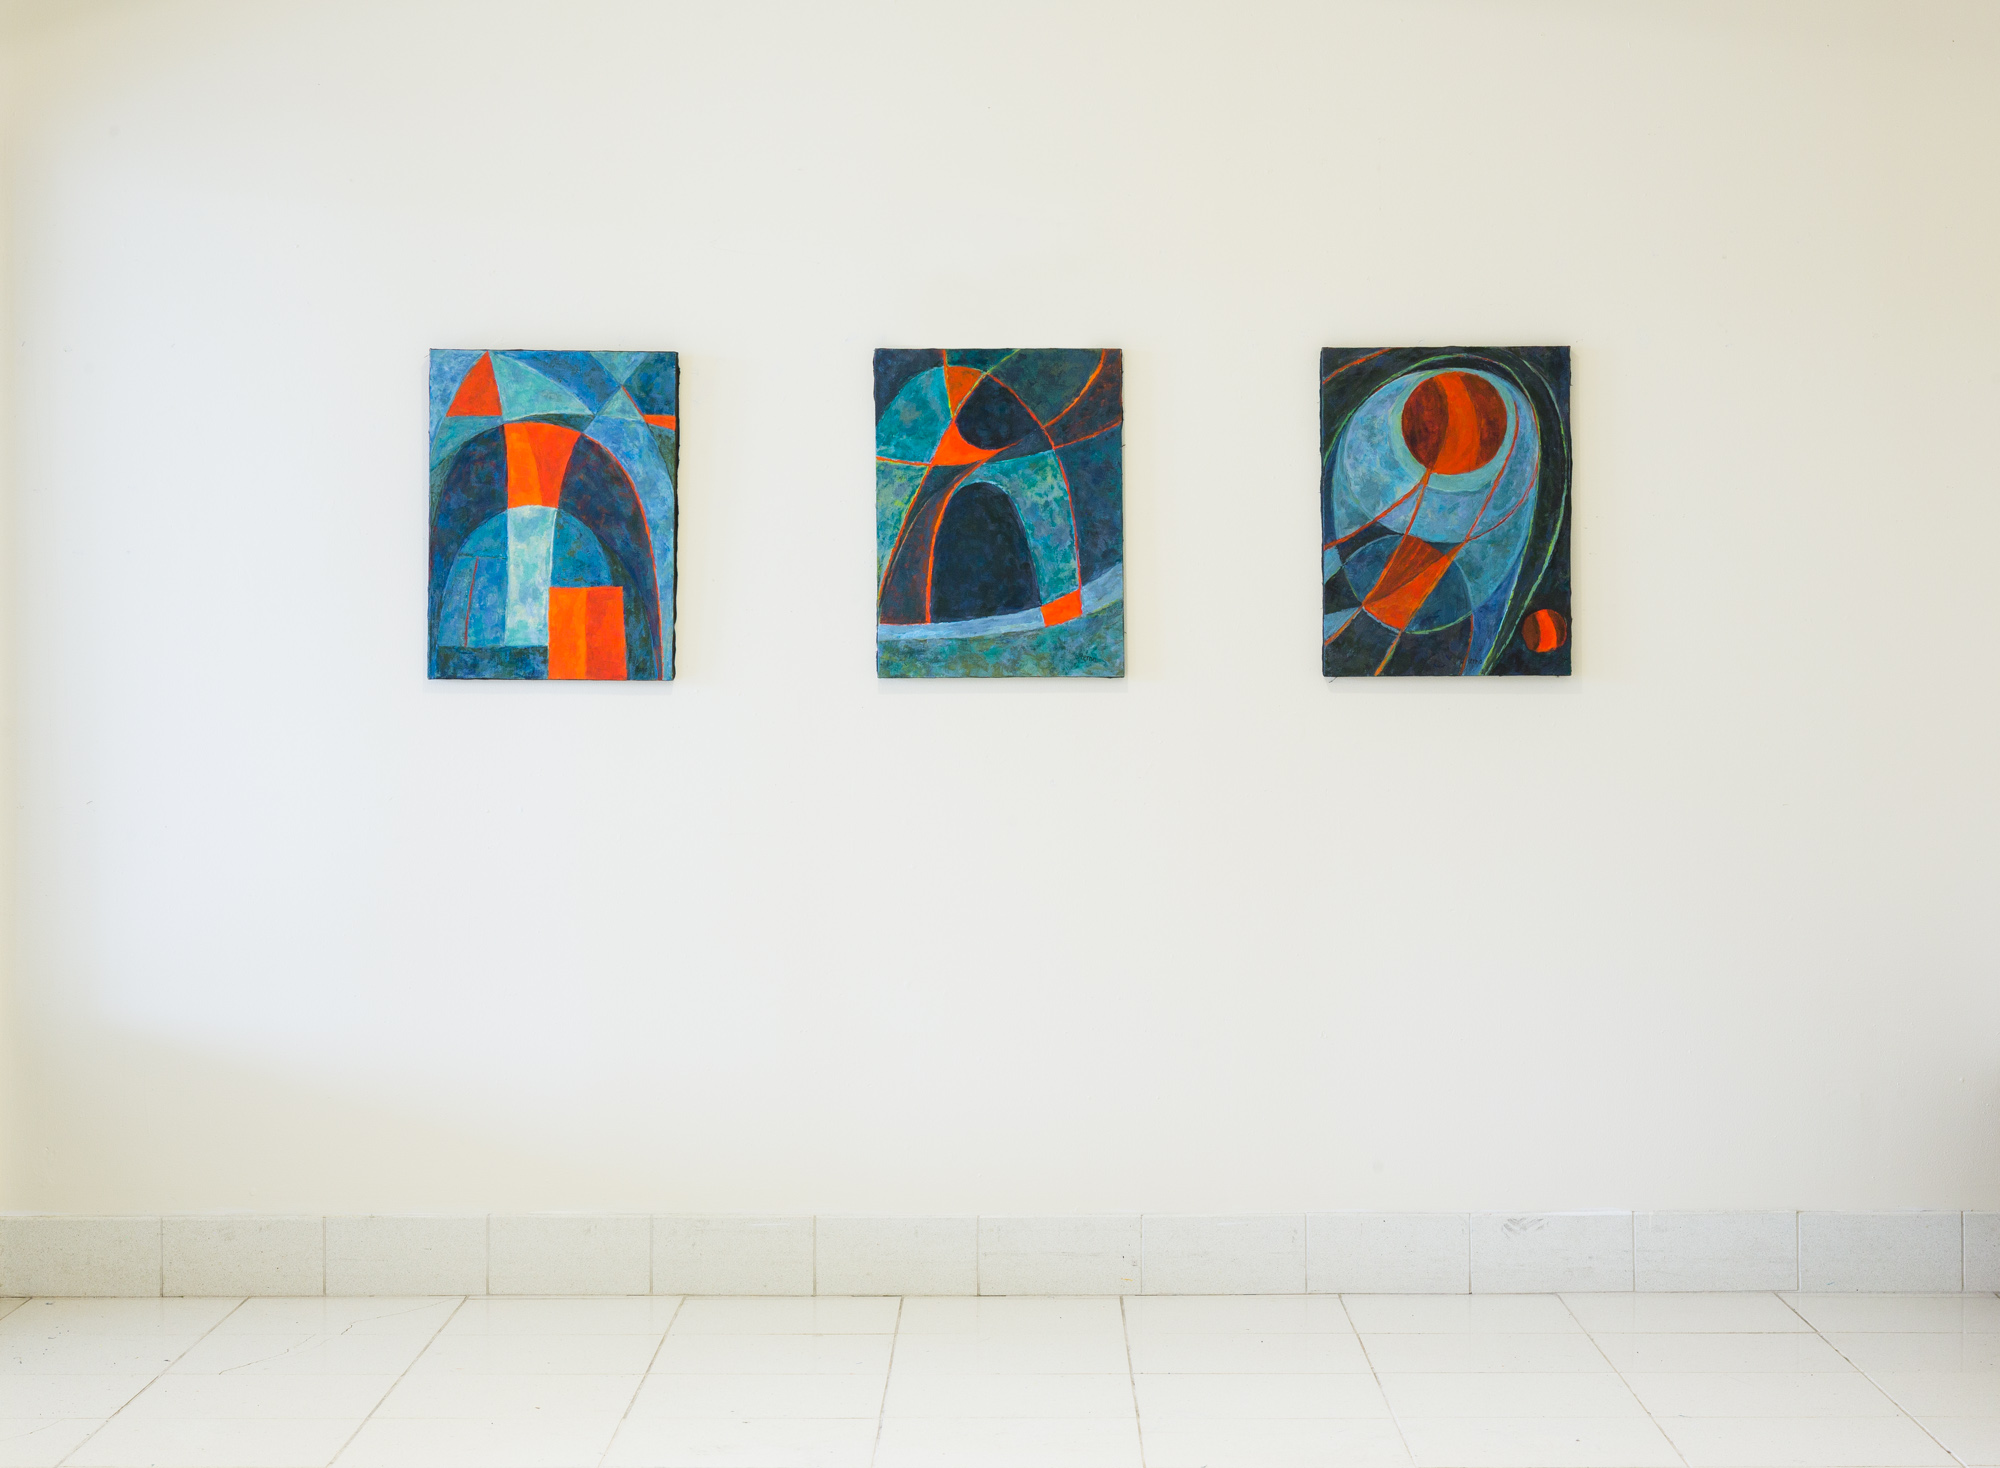 Fred Terna, Second Gate , 2016, Acrylic on Canvas, 24 x 18 inches (left);  Oval Timer , 2017, Acrylic on Canvas, 24 x 18 inches (center); Pierced Echo , 2017, Acrylic on Canvas, 24 x 18 inches (right)